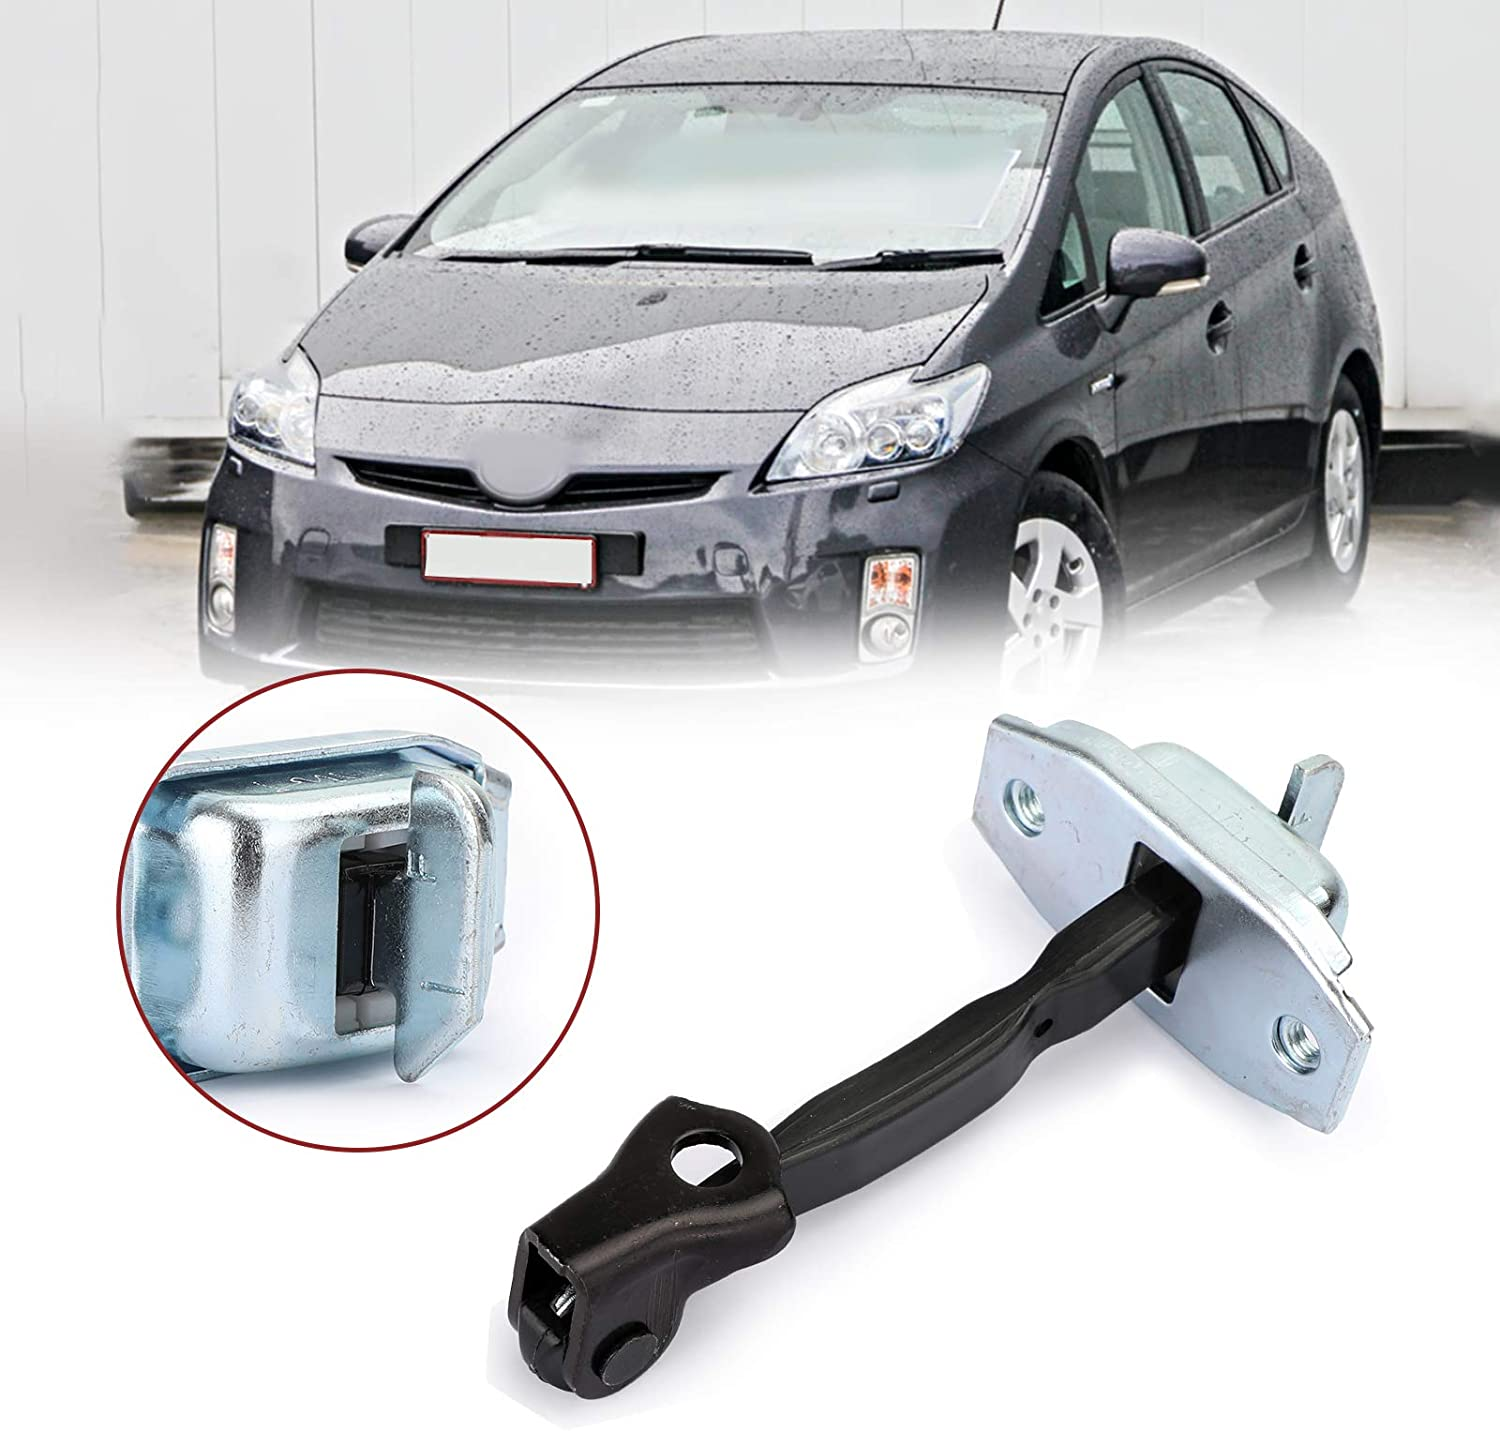 Areyourshop Front Door Stay Check Strap Stopper 68620-02061 Fit For TO-YO-TA Corolla Matrix